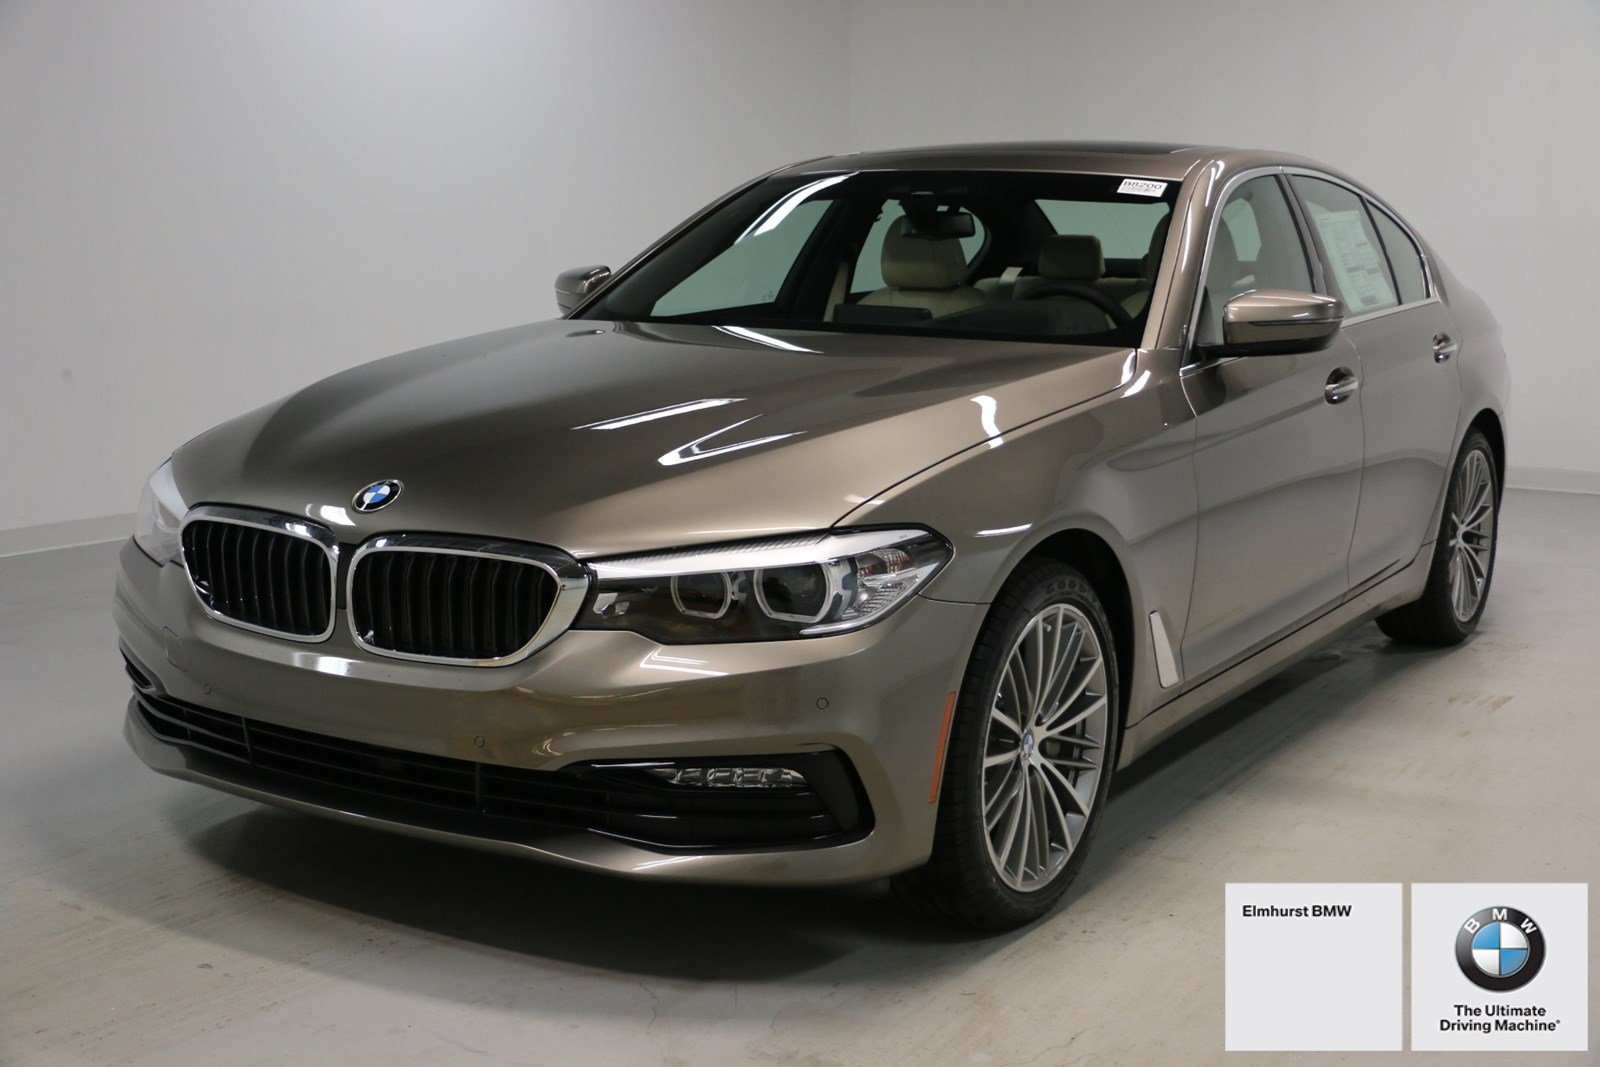 Pre Owned 2018 Bmw 5 Series 530i Xdrive 4dr Car In Elmhurst B8200